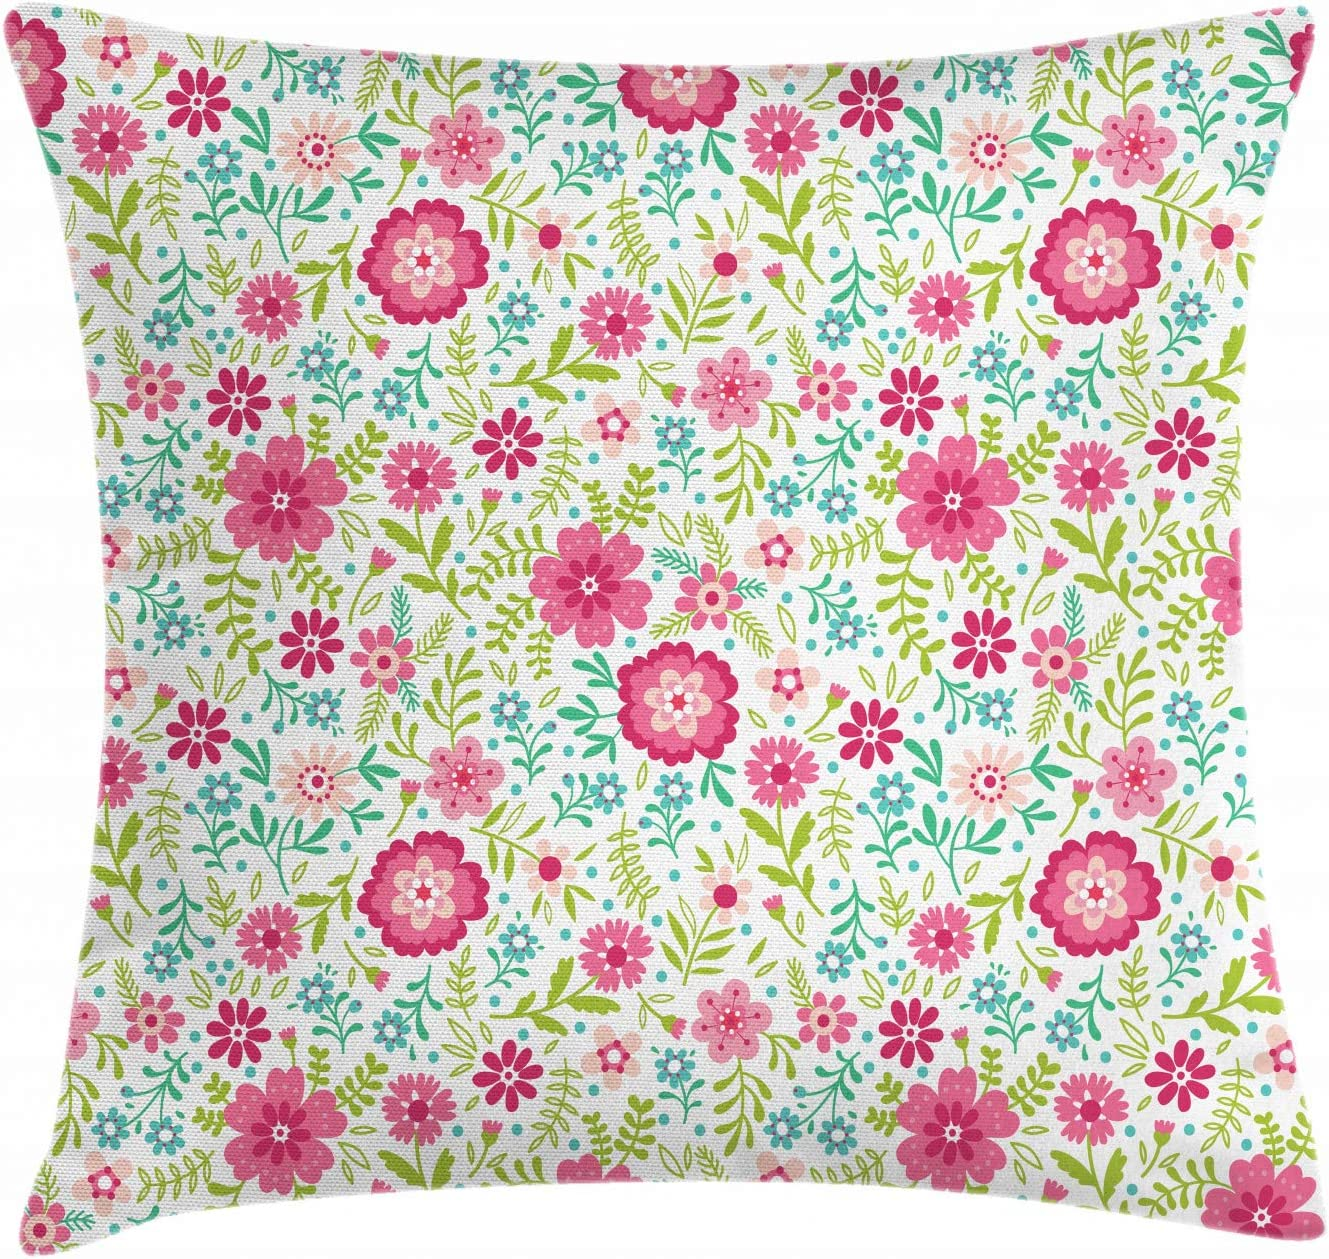 Amazon Com Ambesonne Spring Throw Pillow Cushion Cover Blossoming Field With Fern Branches Leaves And Flowers Ornamental Decorative Square Accent Pillow Case 20 X 20 Pink Lime Green Turquoise Home Kitchen